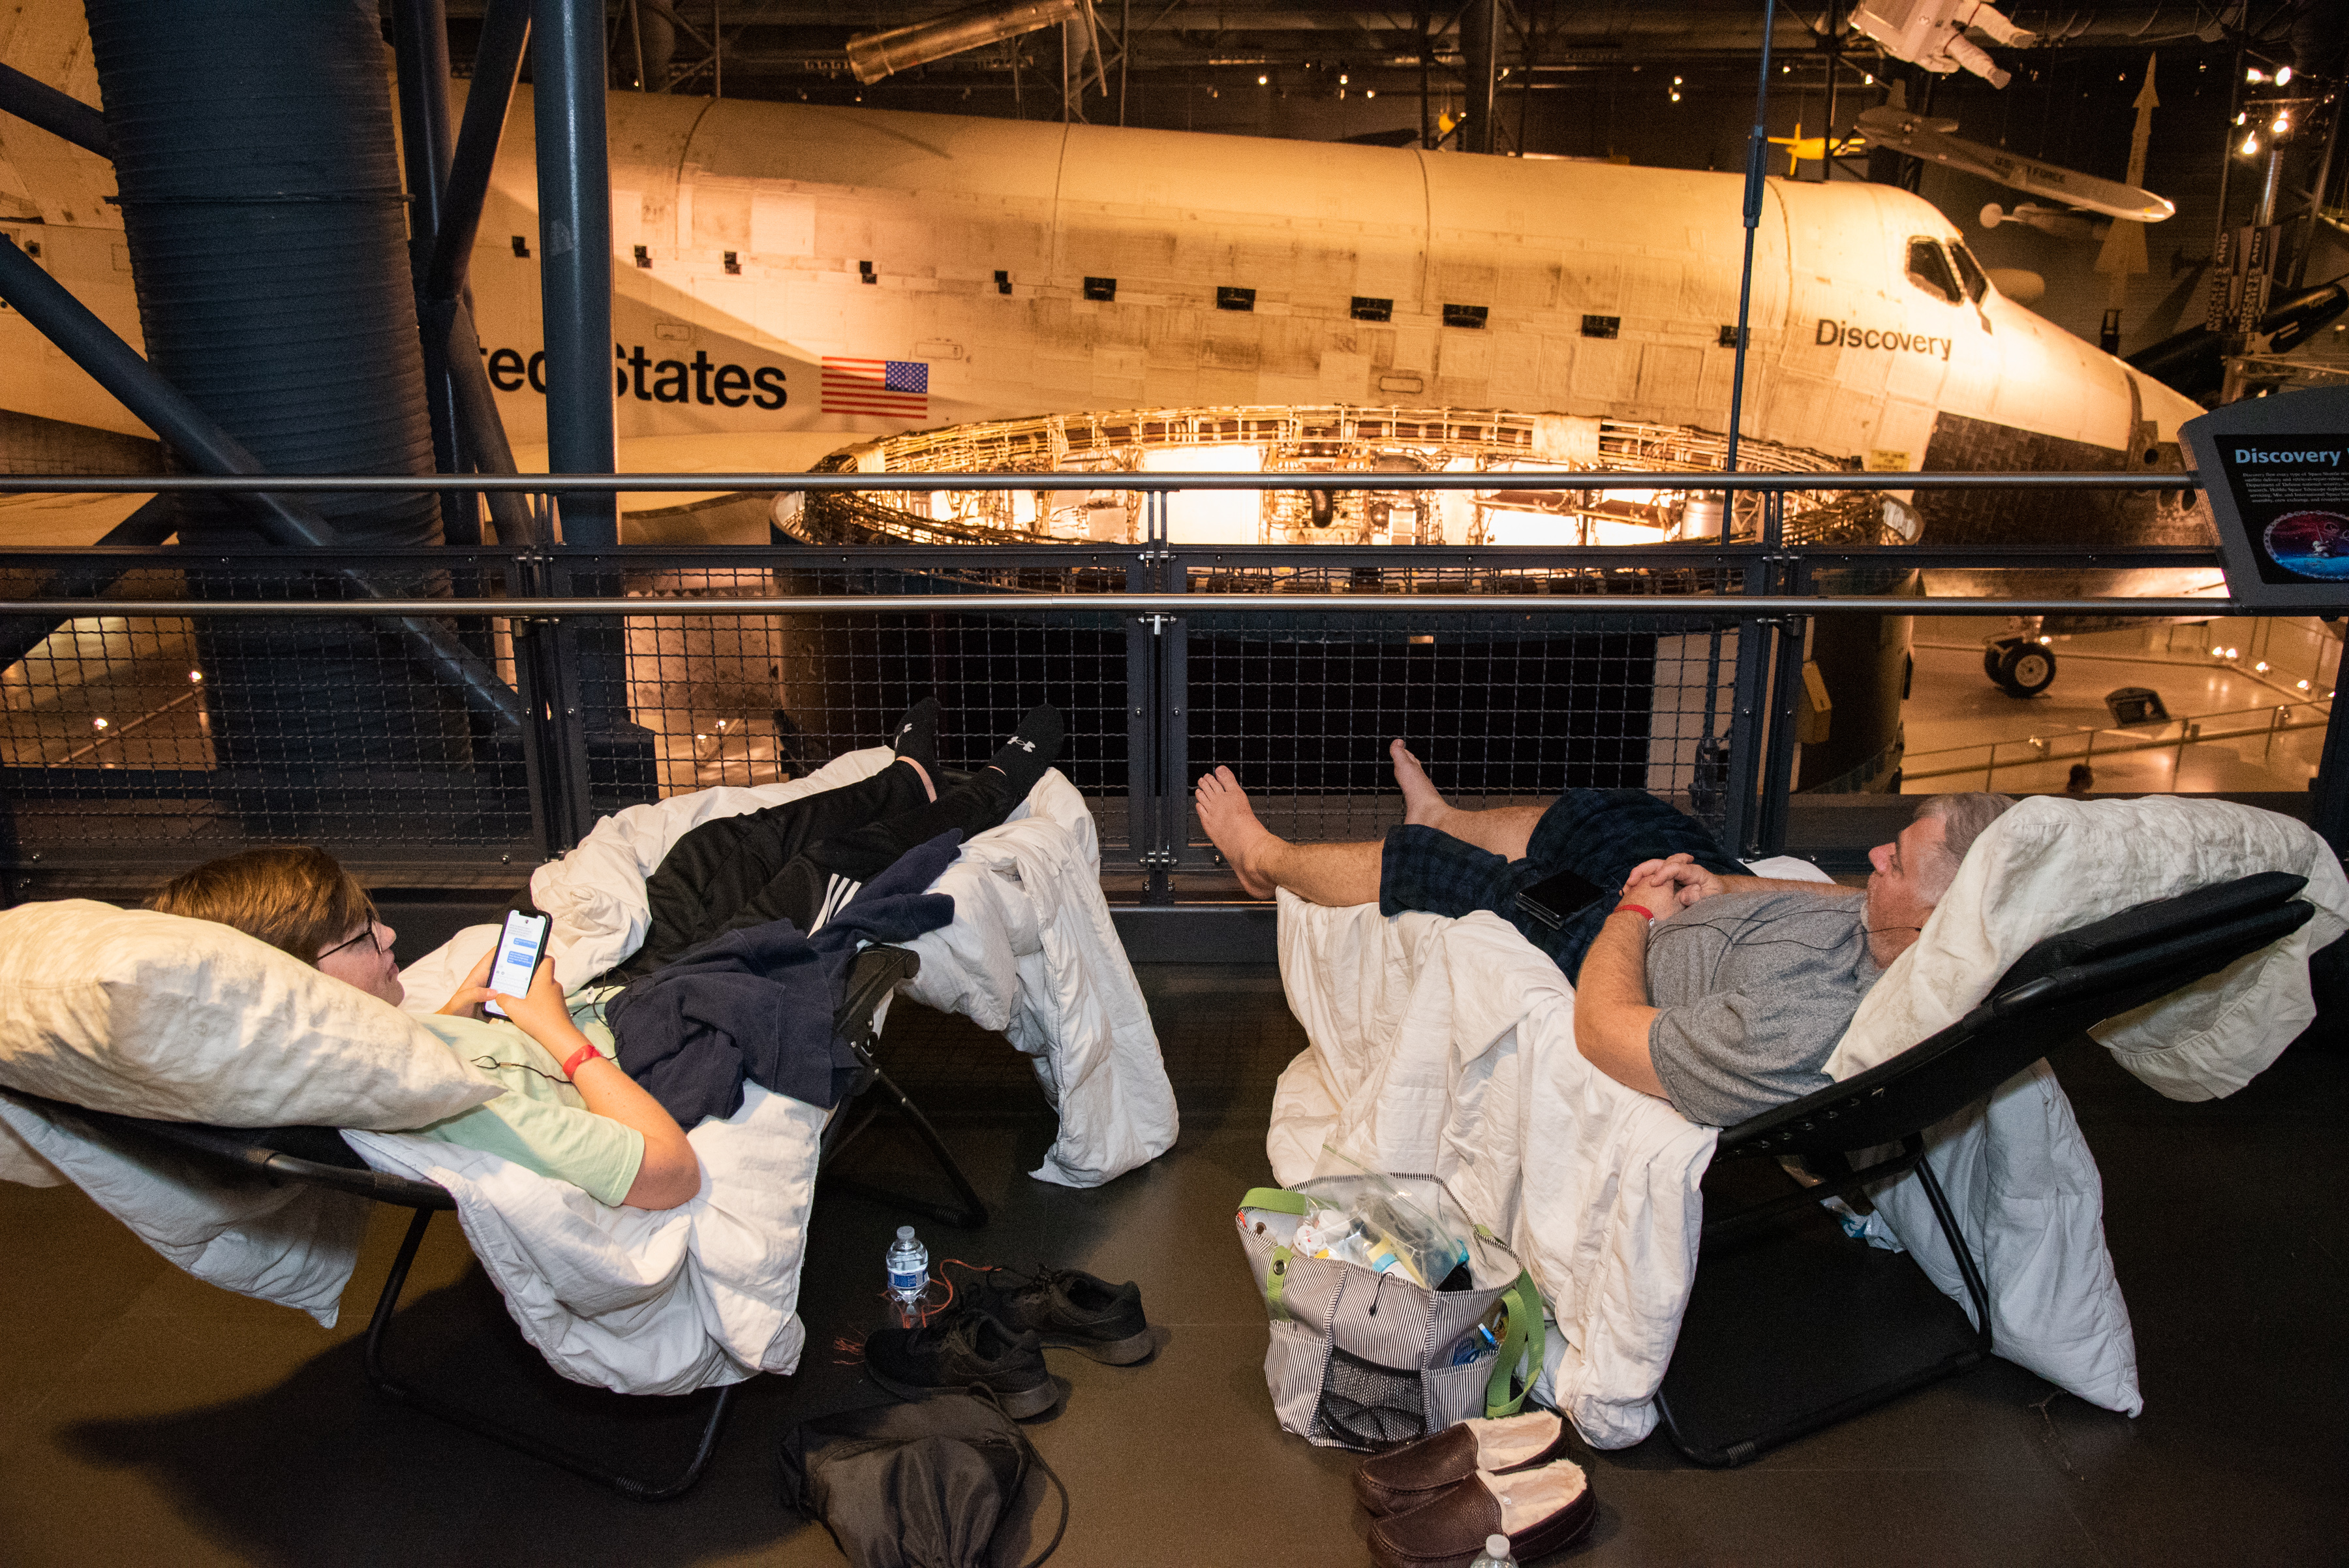 Sleepover at the National Air and Space Museum